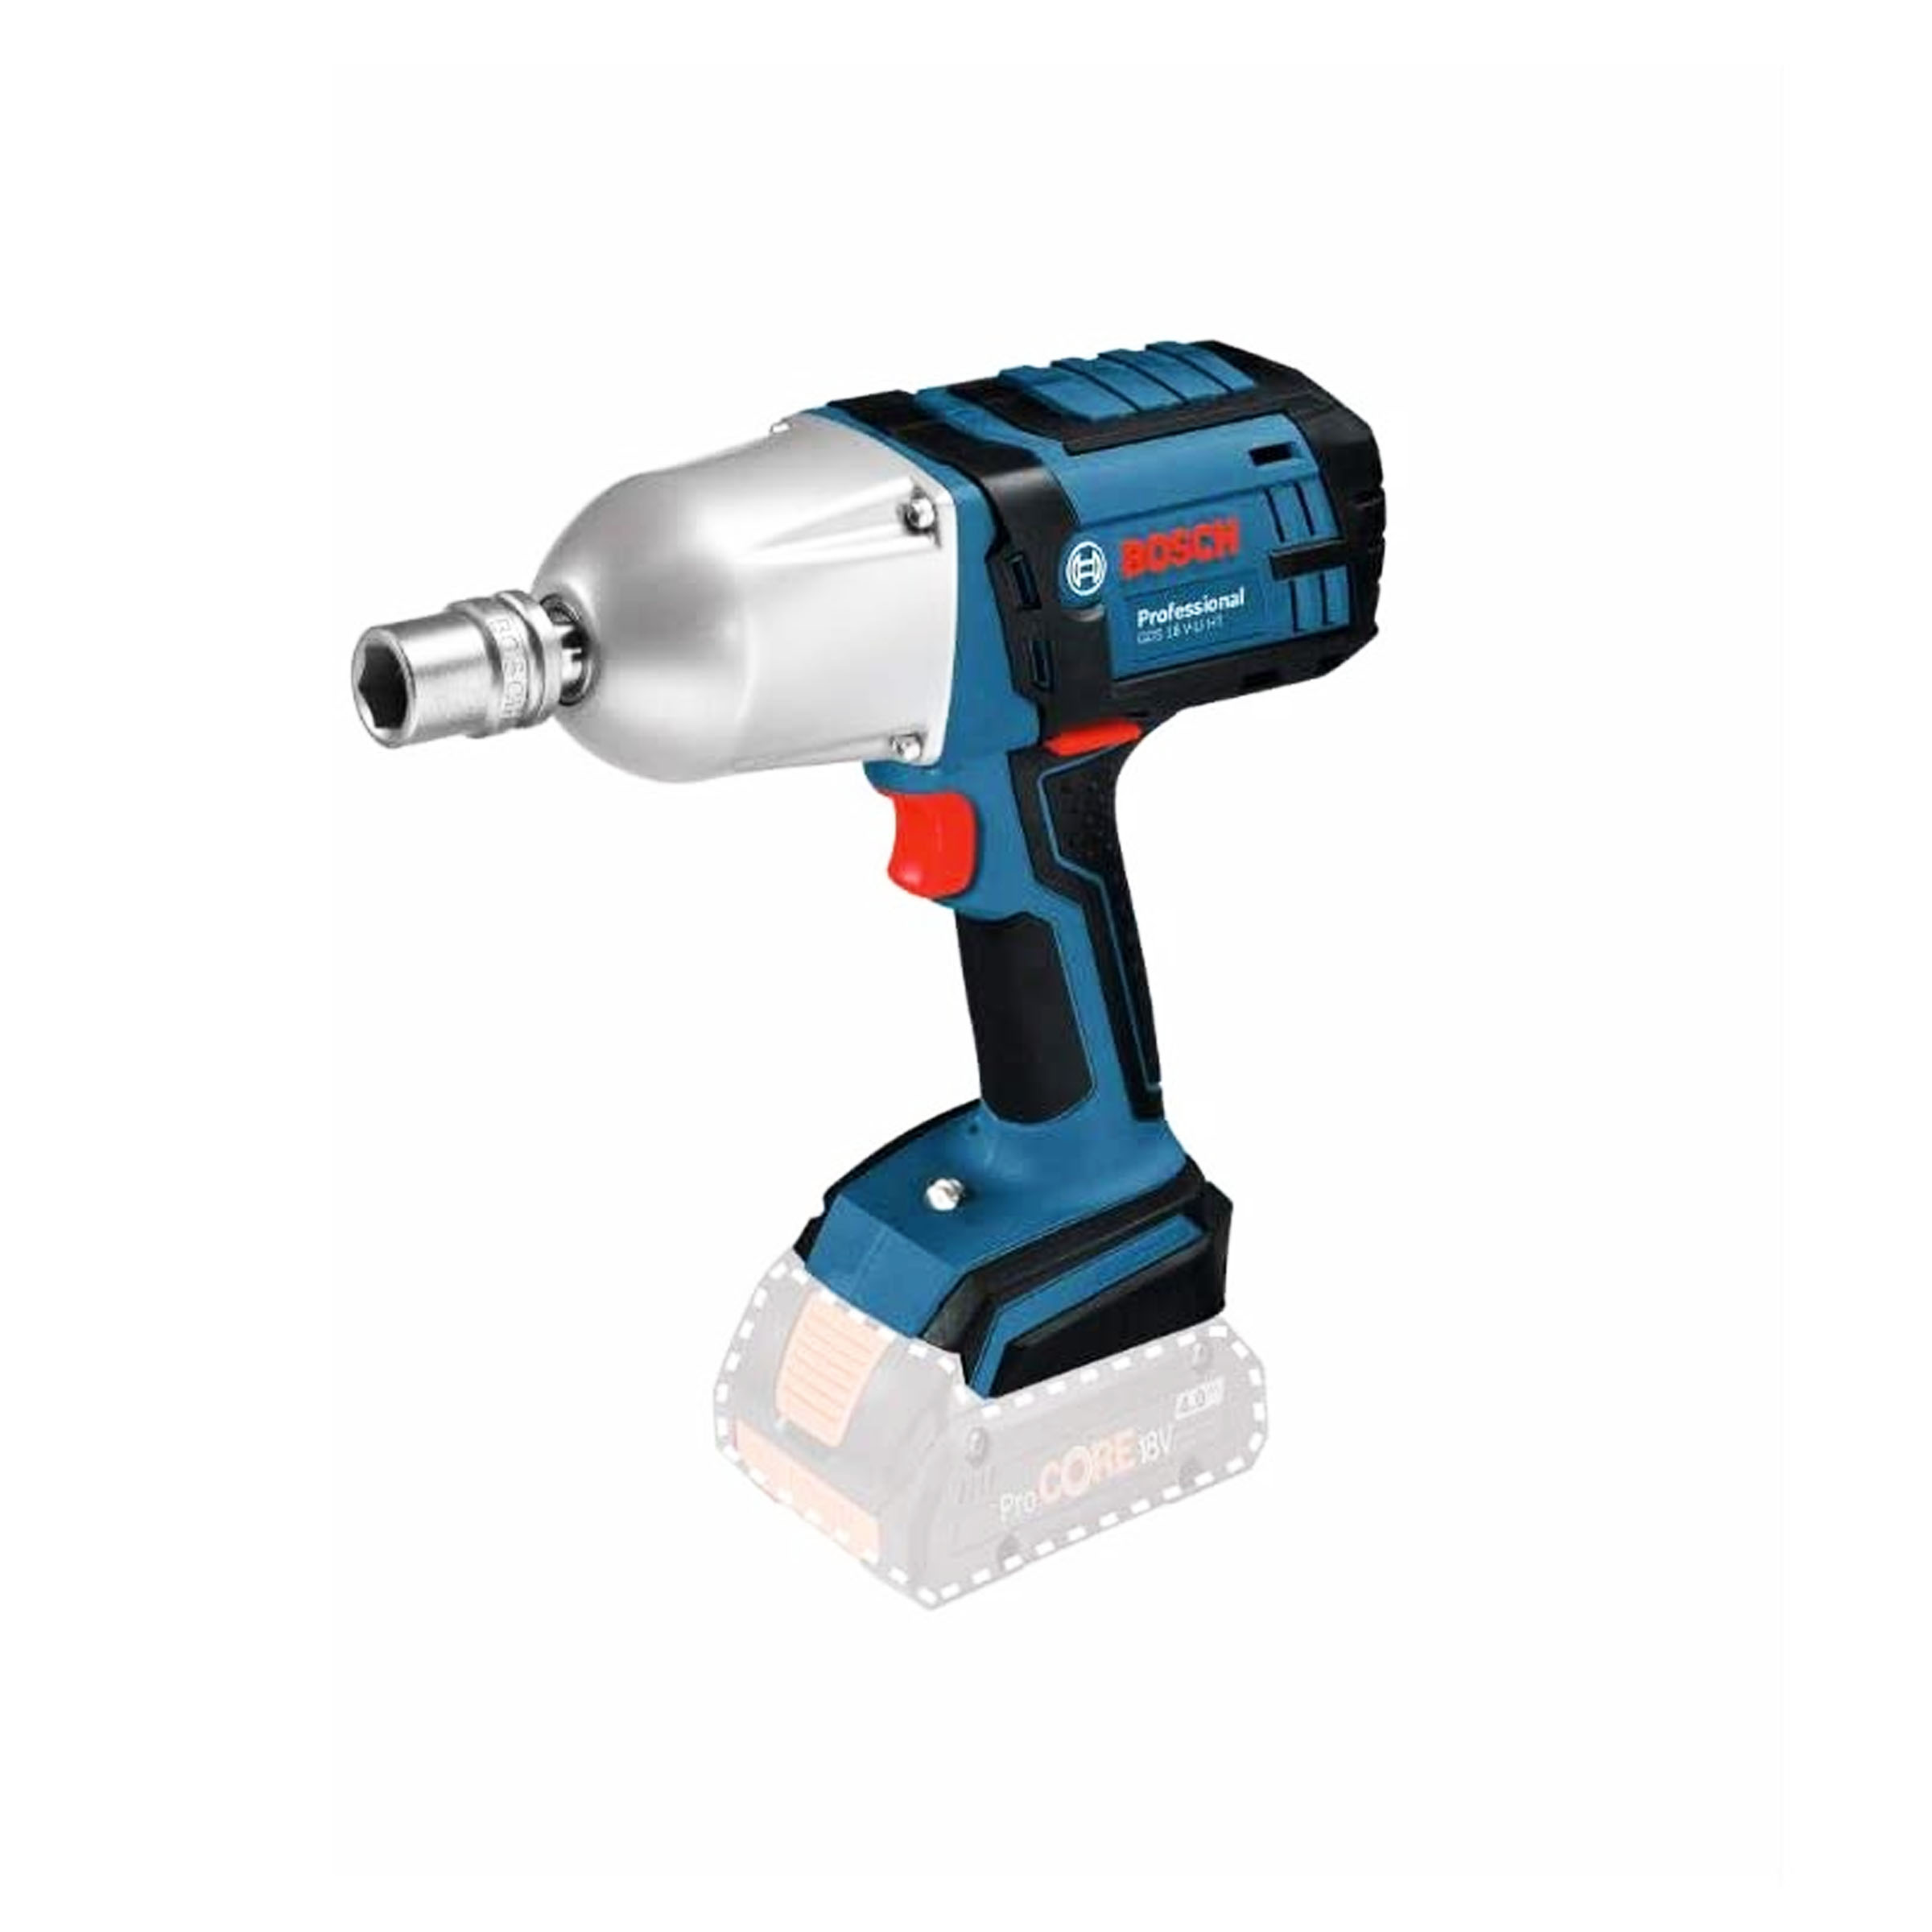 toptopdeal-osch Professional GDS 18 V - LI HT Cordless Impact Wrench (without Battery and Charger) - Carton